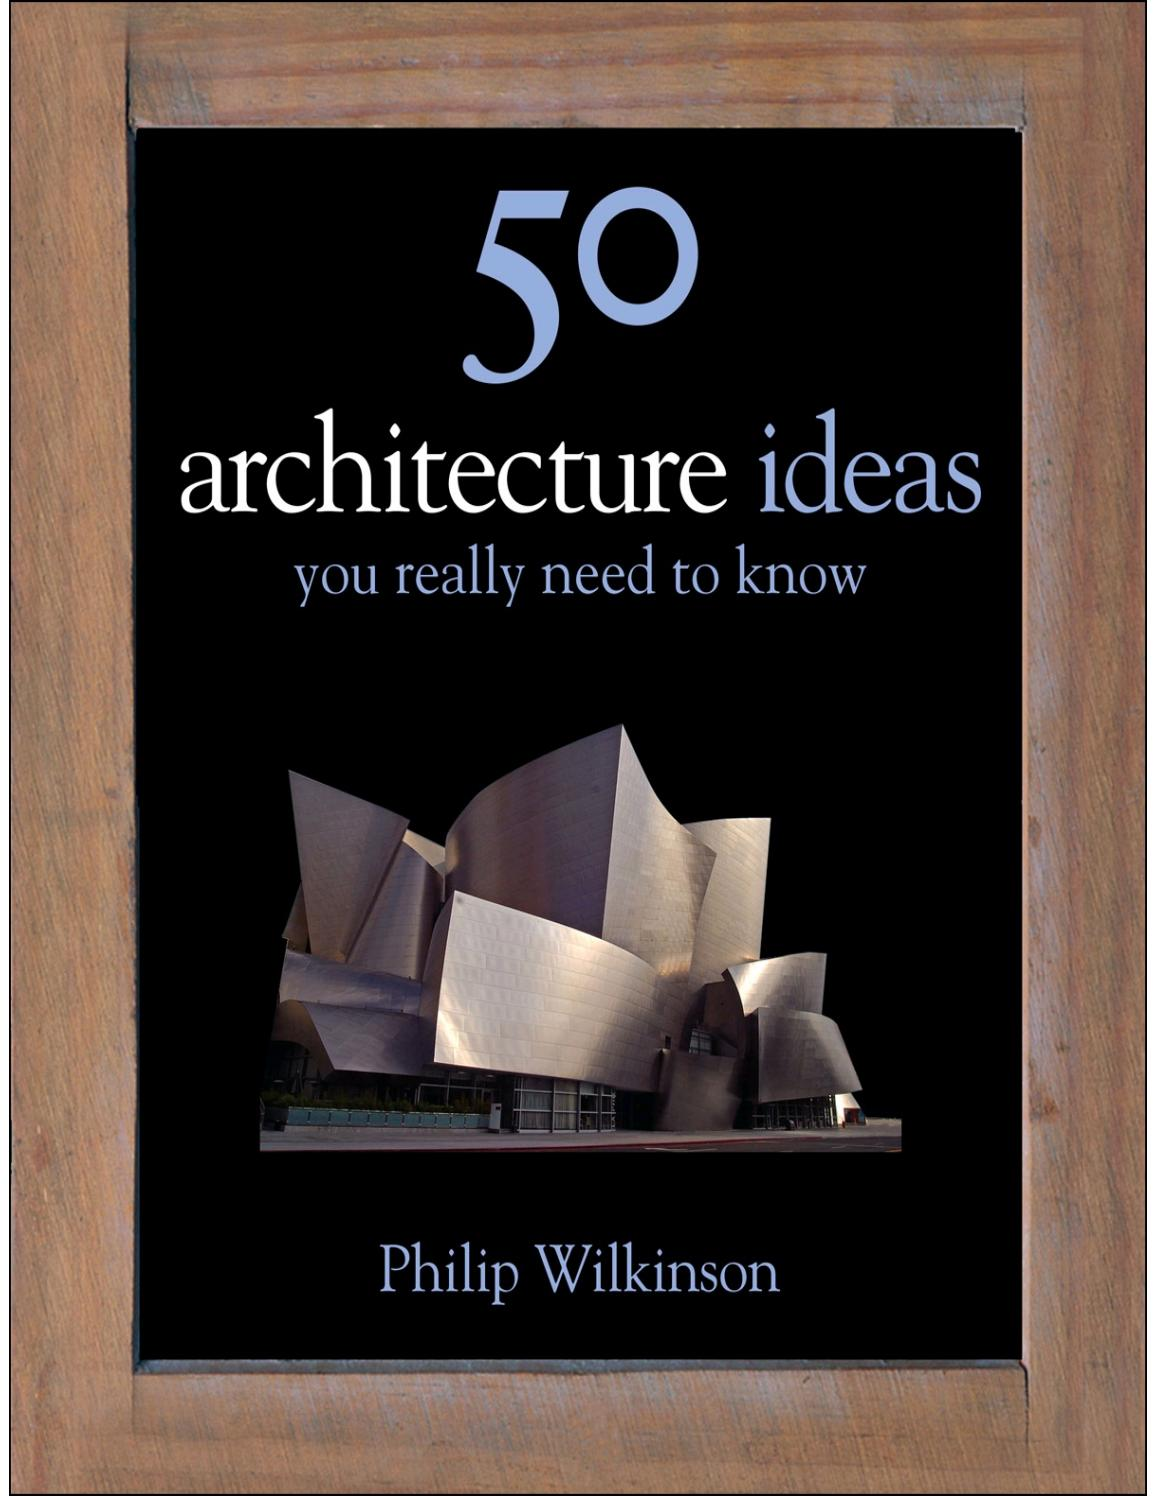 50 architecture ideas you reall by archana singh - issuu b085dfcb5c